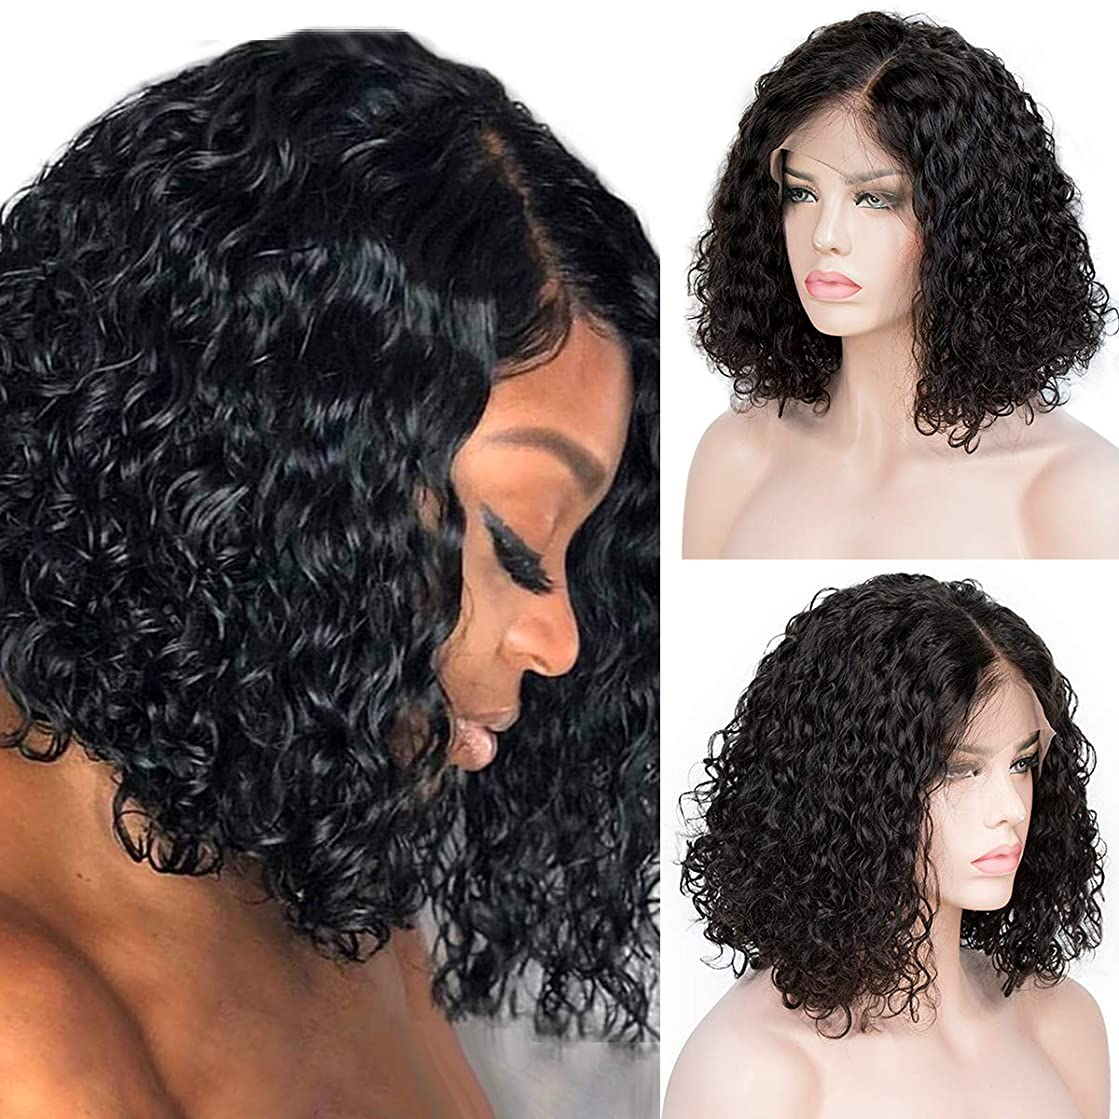 Curly Lace Front Wigs Brazilian Bob Lace Wig Human Hair Full End 13x4 Lace Wavy Wigs for Women Pre Pluck Middle Part Black 14